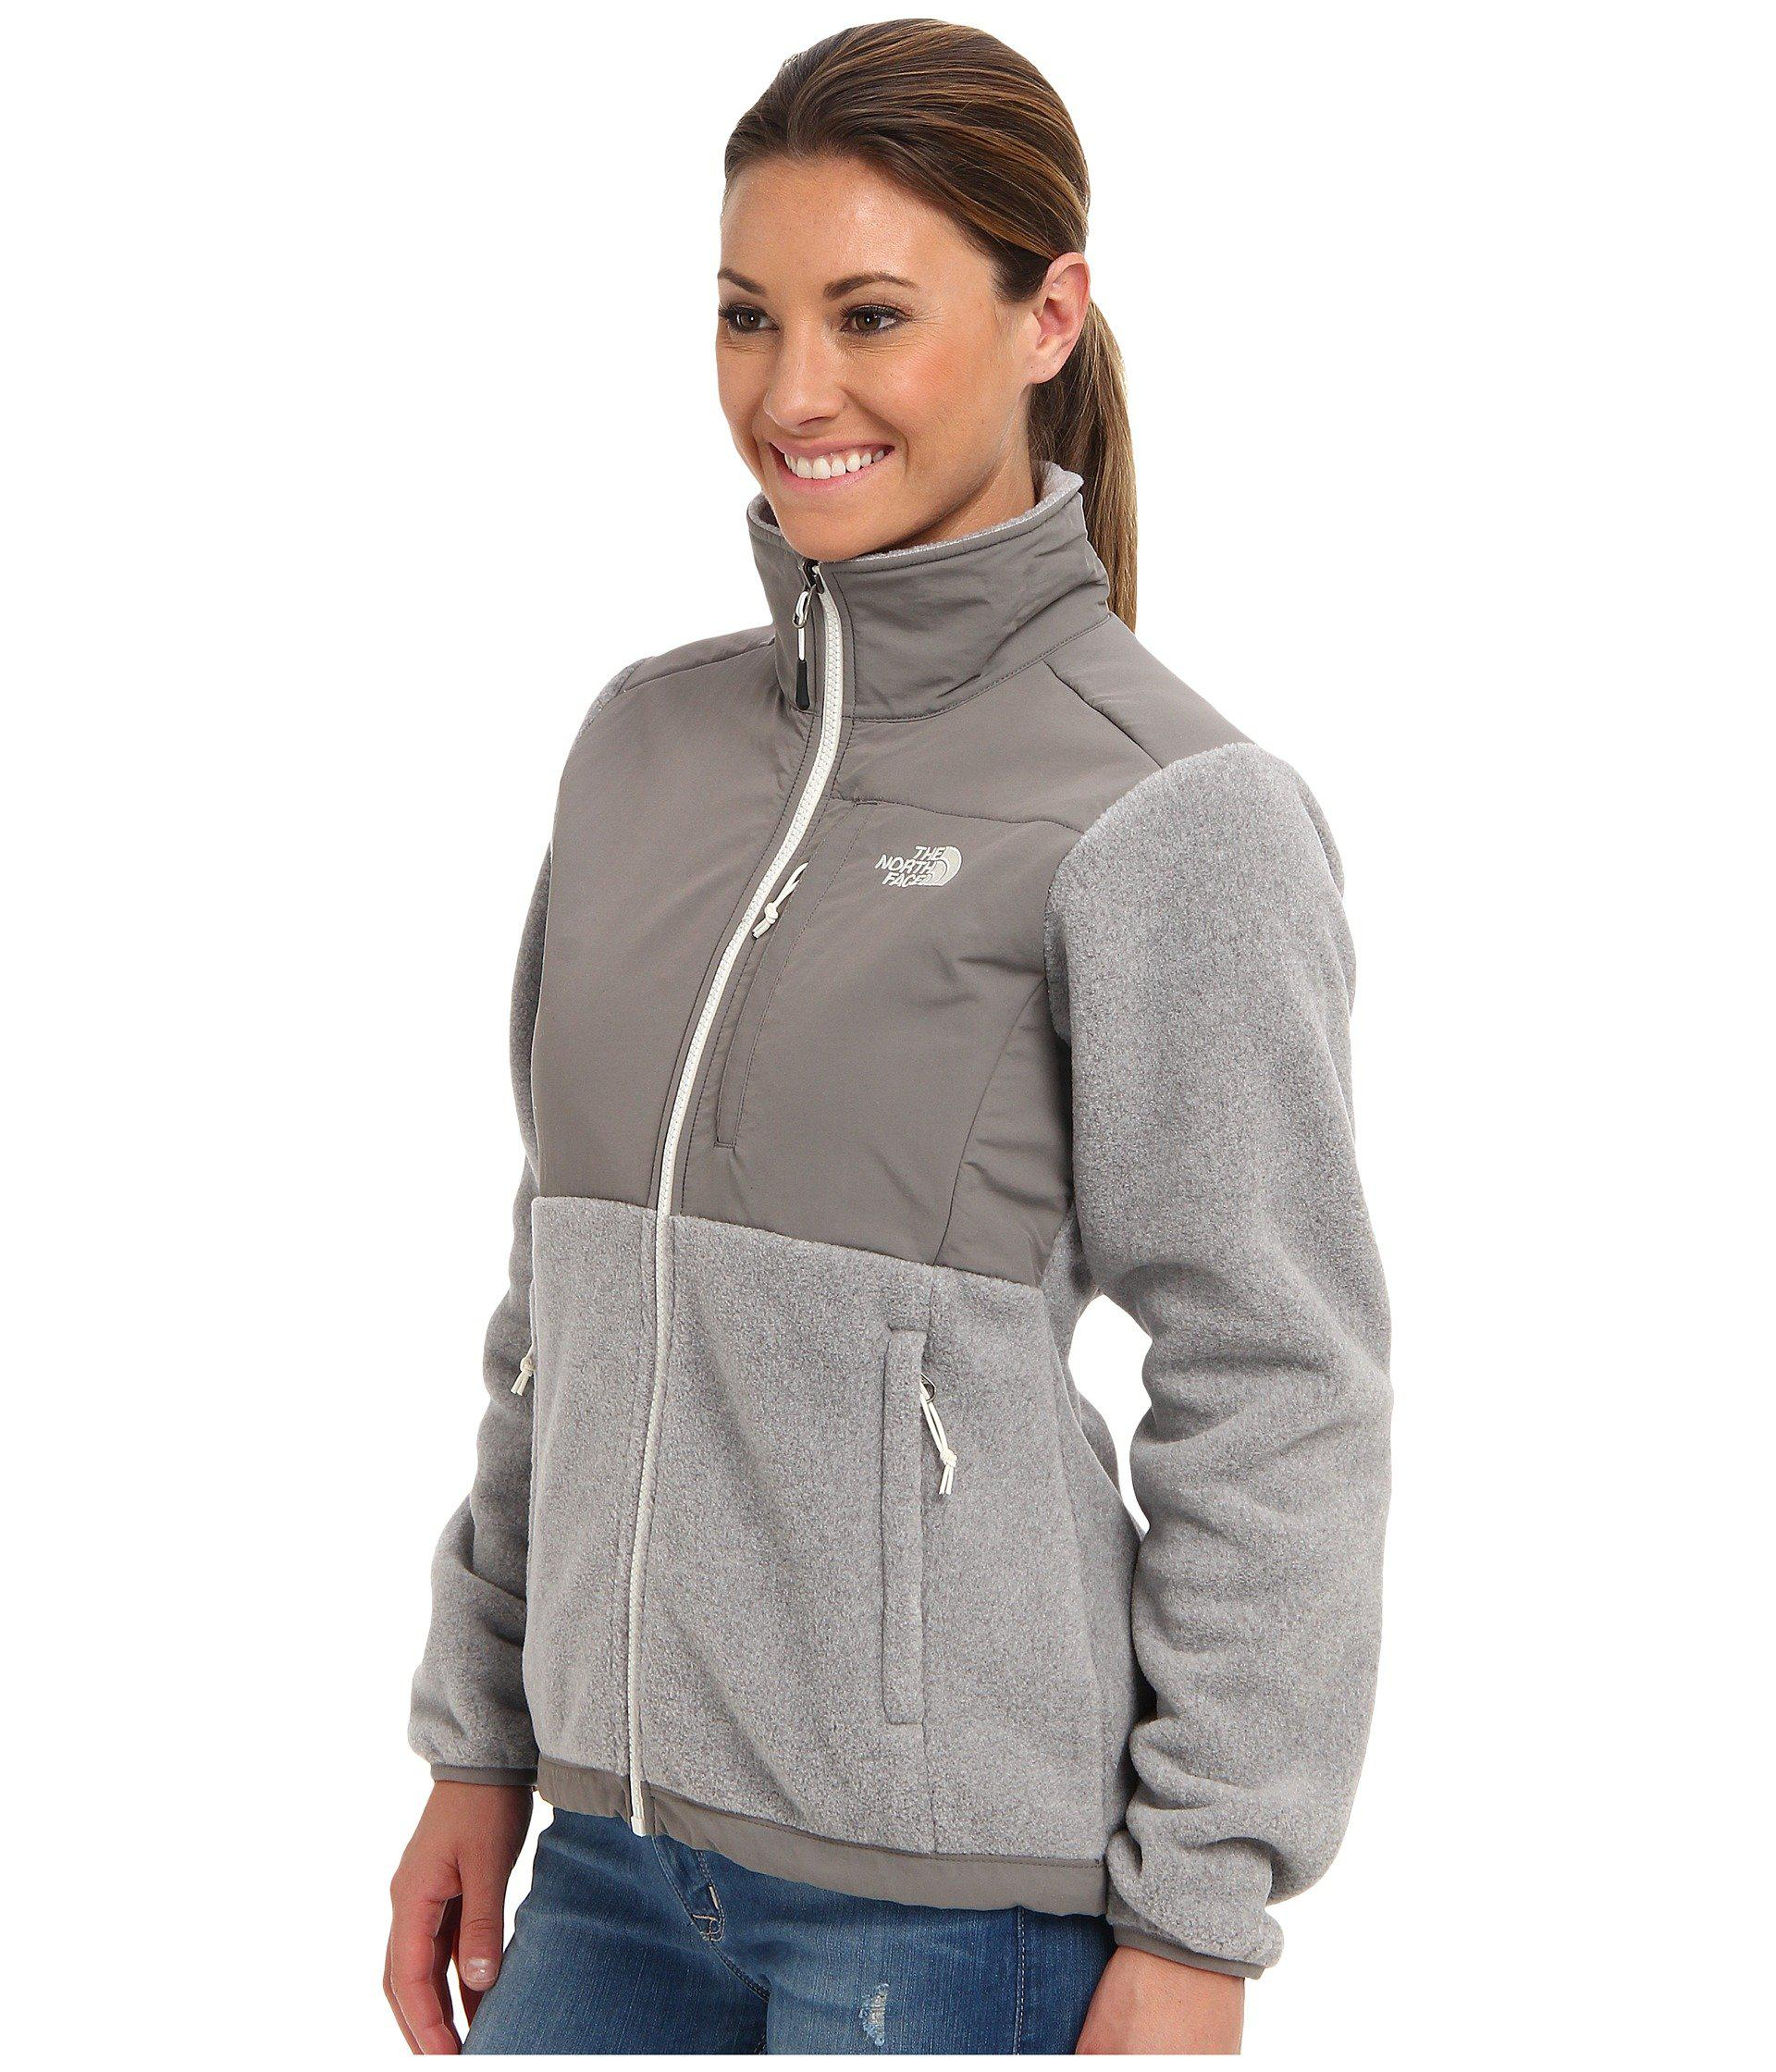 496928fb0ab8 ... sale lyst the north face denali jacket recycled high rise grey heather  2ab6a 4ad9f